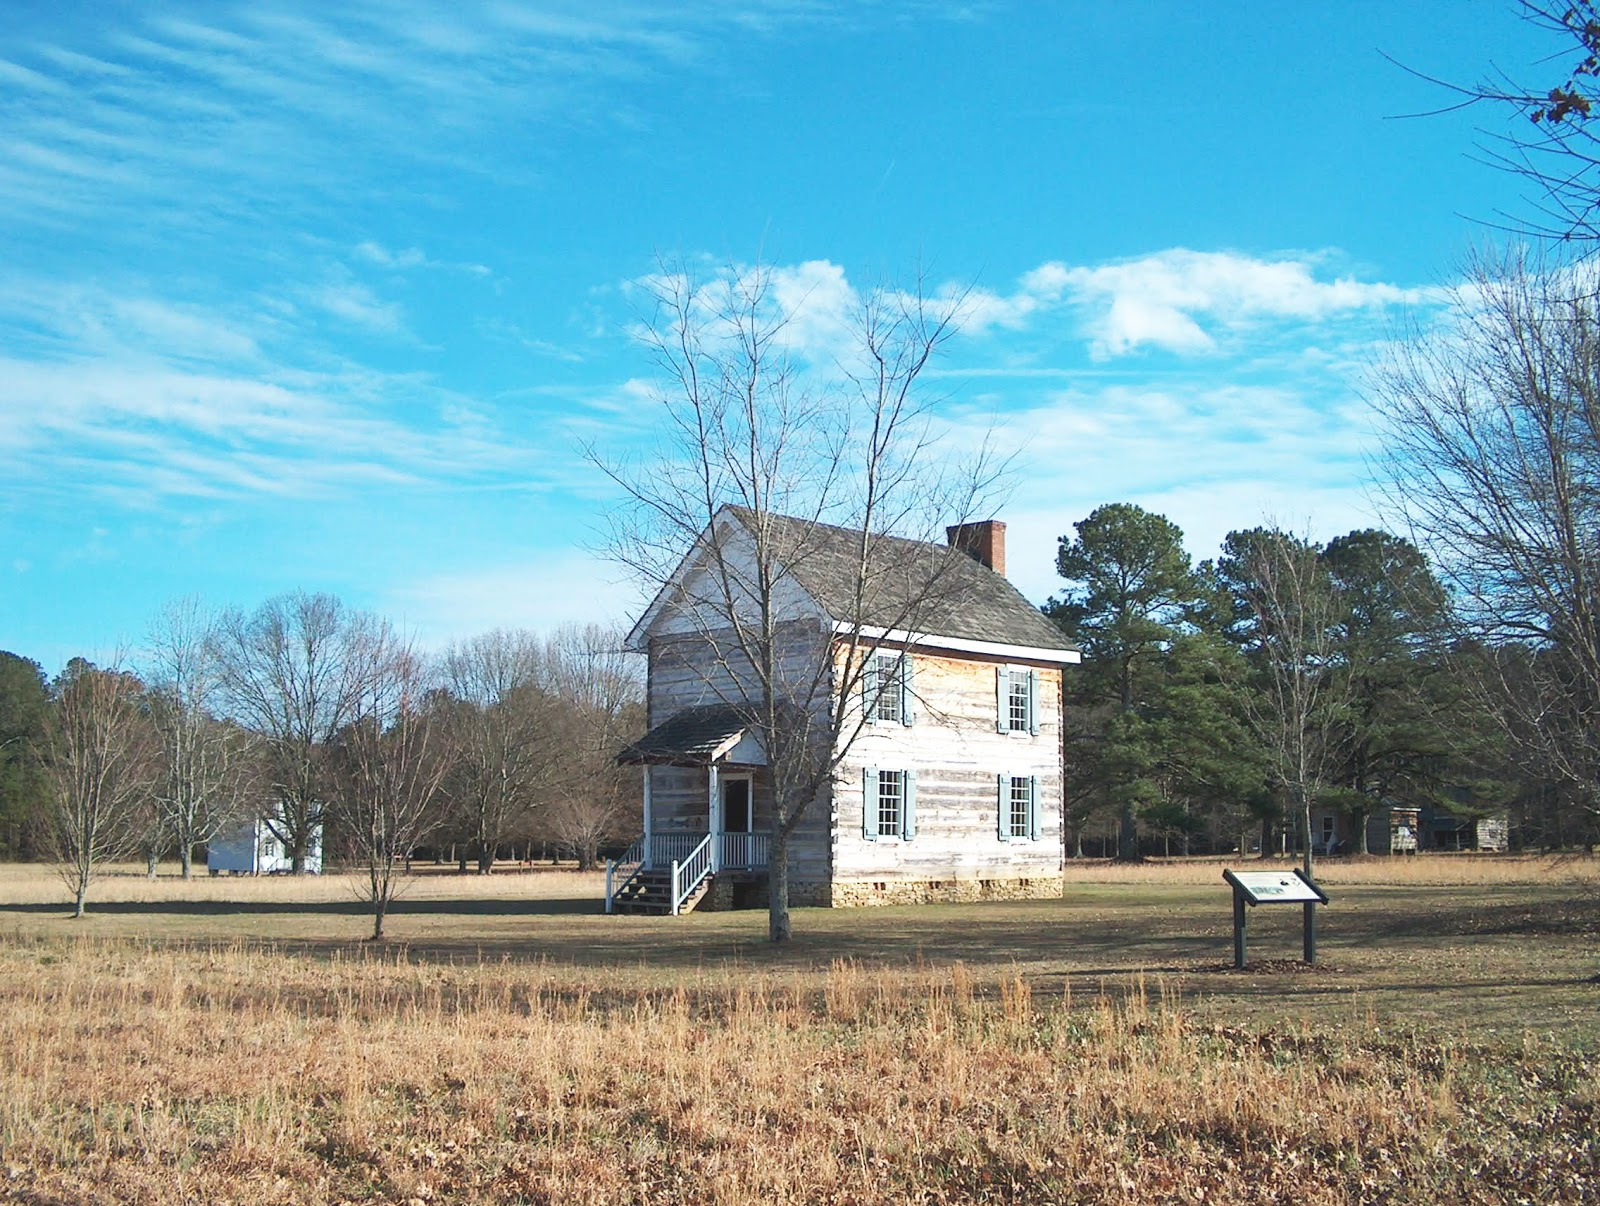 """Reconstructed buildings at the current historical site of New Echota, capital of the Cherokee Nation prior to their forced removal. """"New Echota"""" by Cculber007 at en.wikipedia. Licensed under CC BY-SA 3.0 via Wikimedia Commons."""